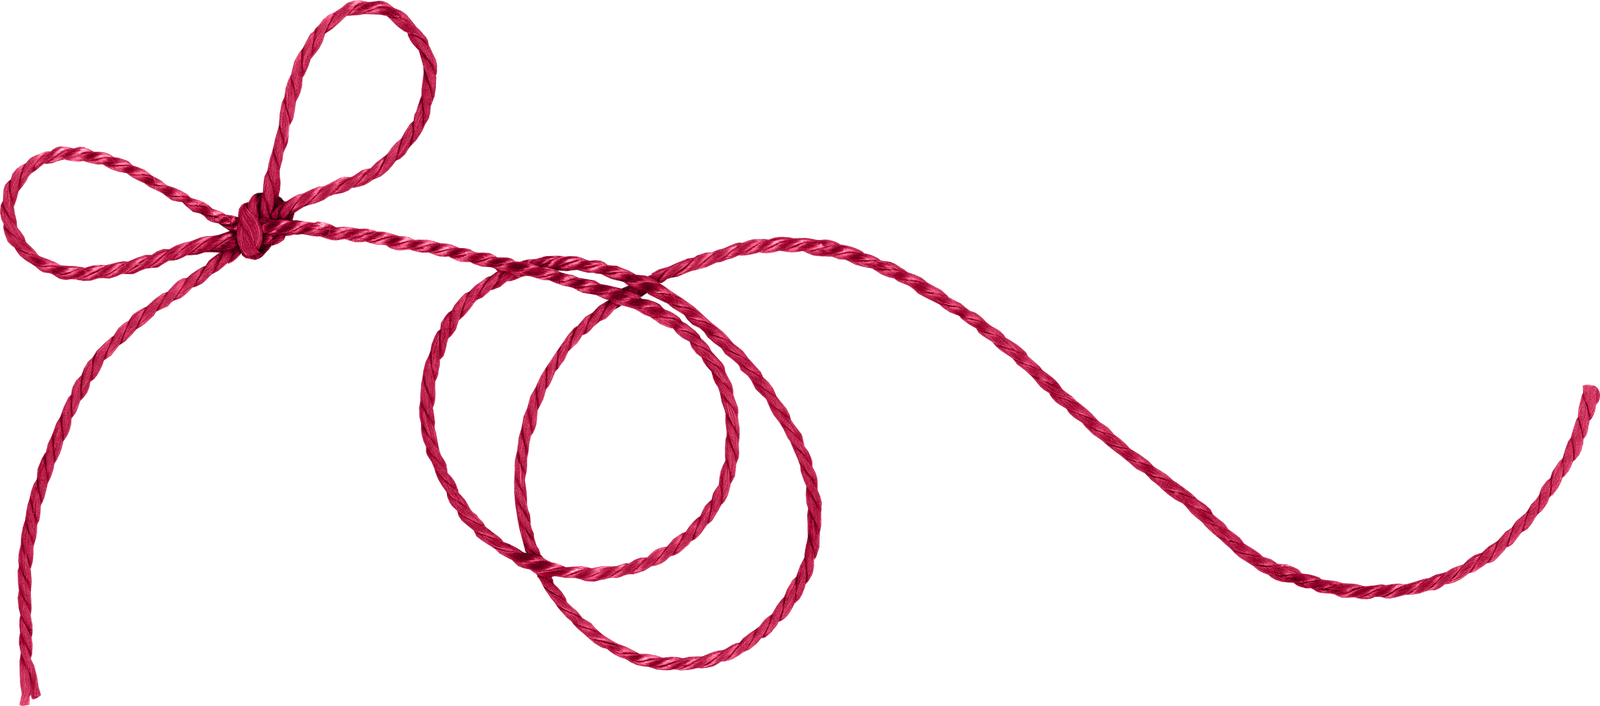 Yarn string png. Strings transparent images pluspng